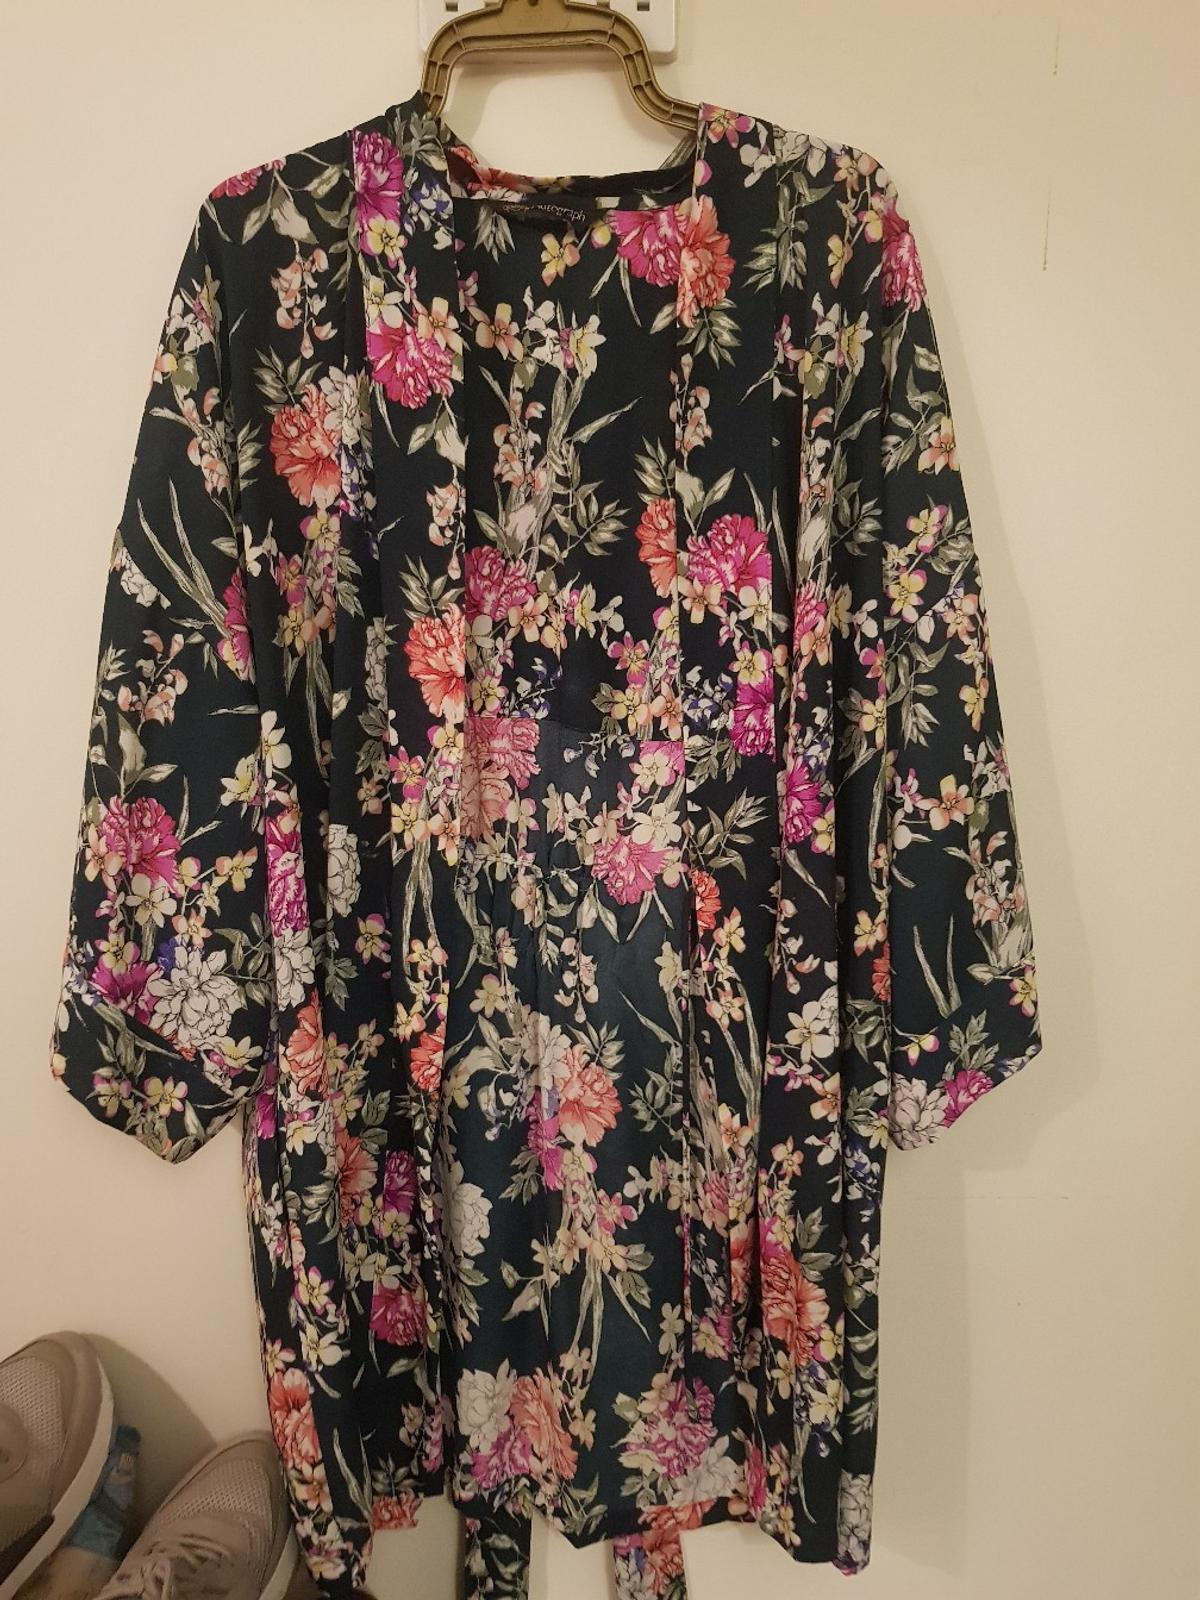 perfect condition really beautiful would fit size 6-14